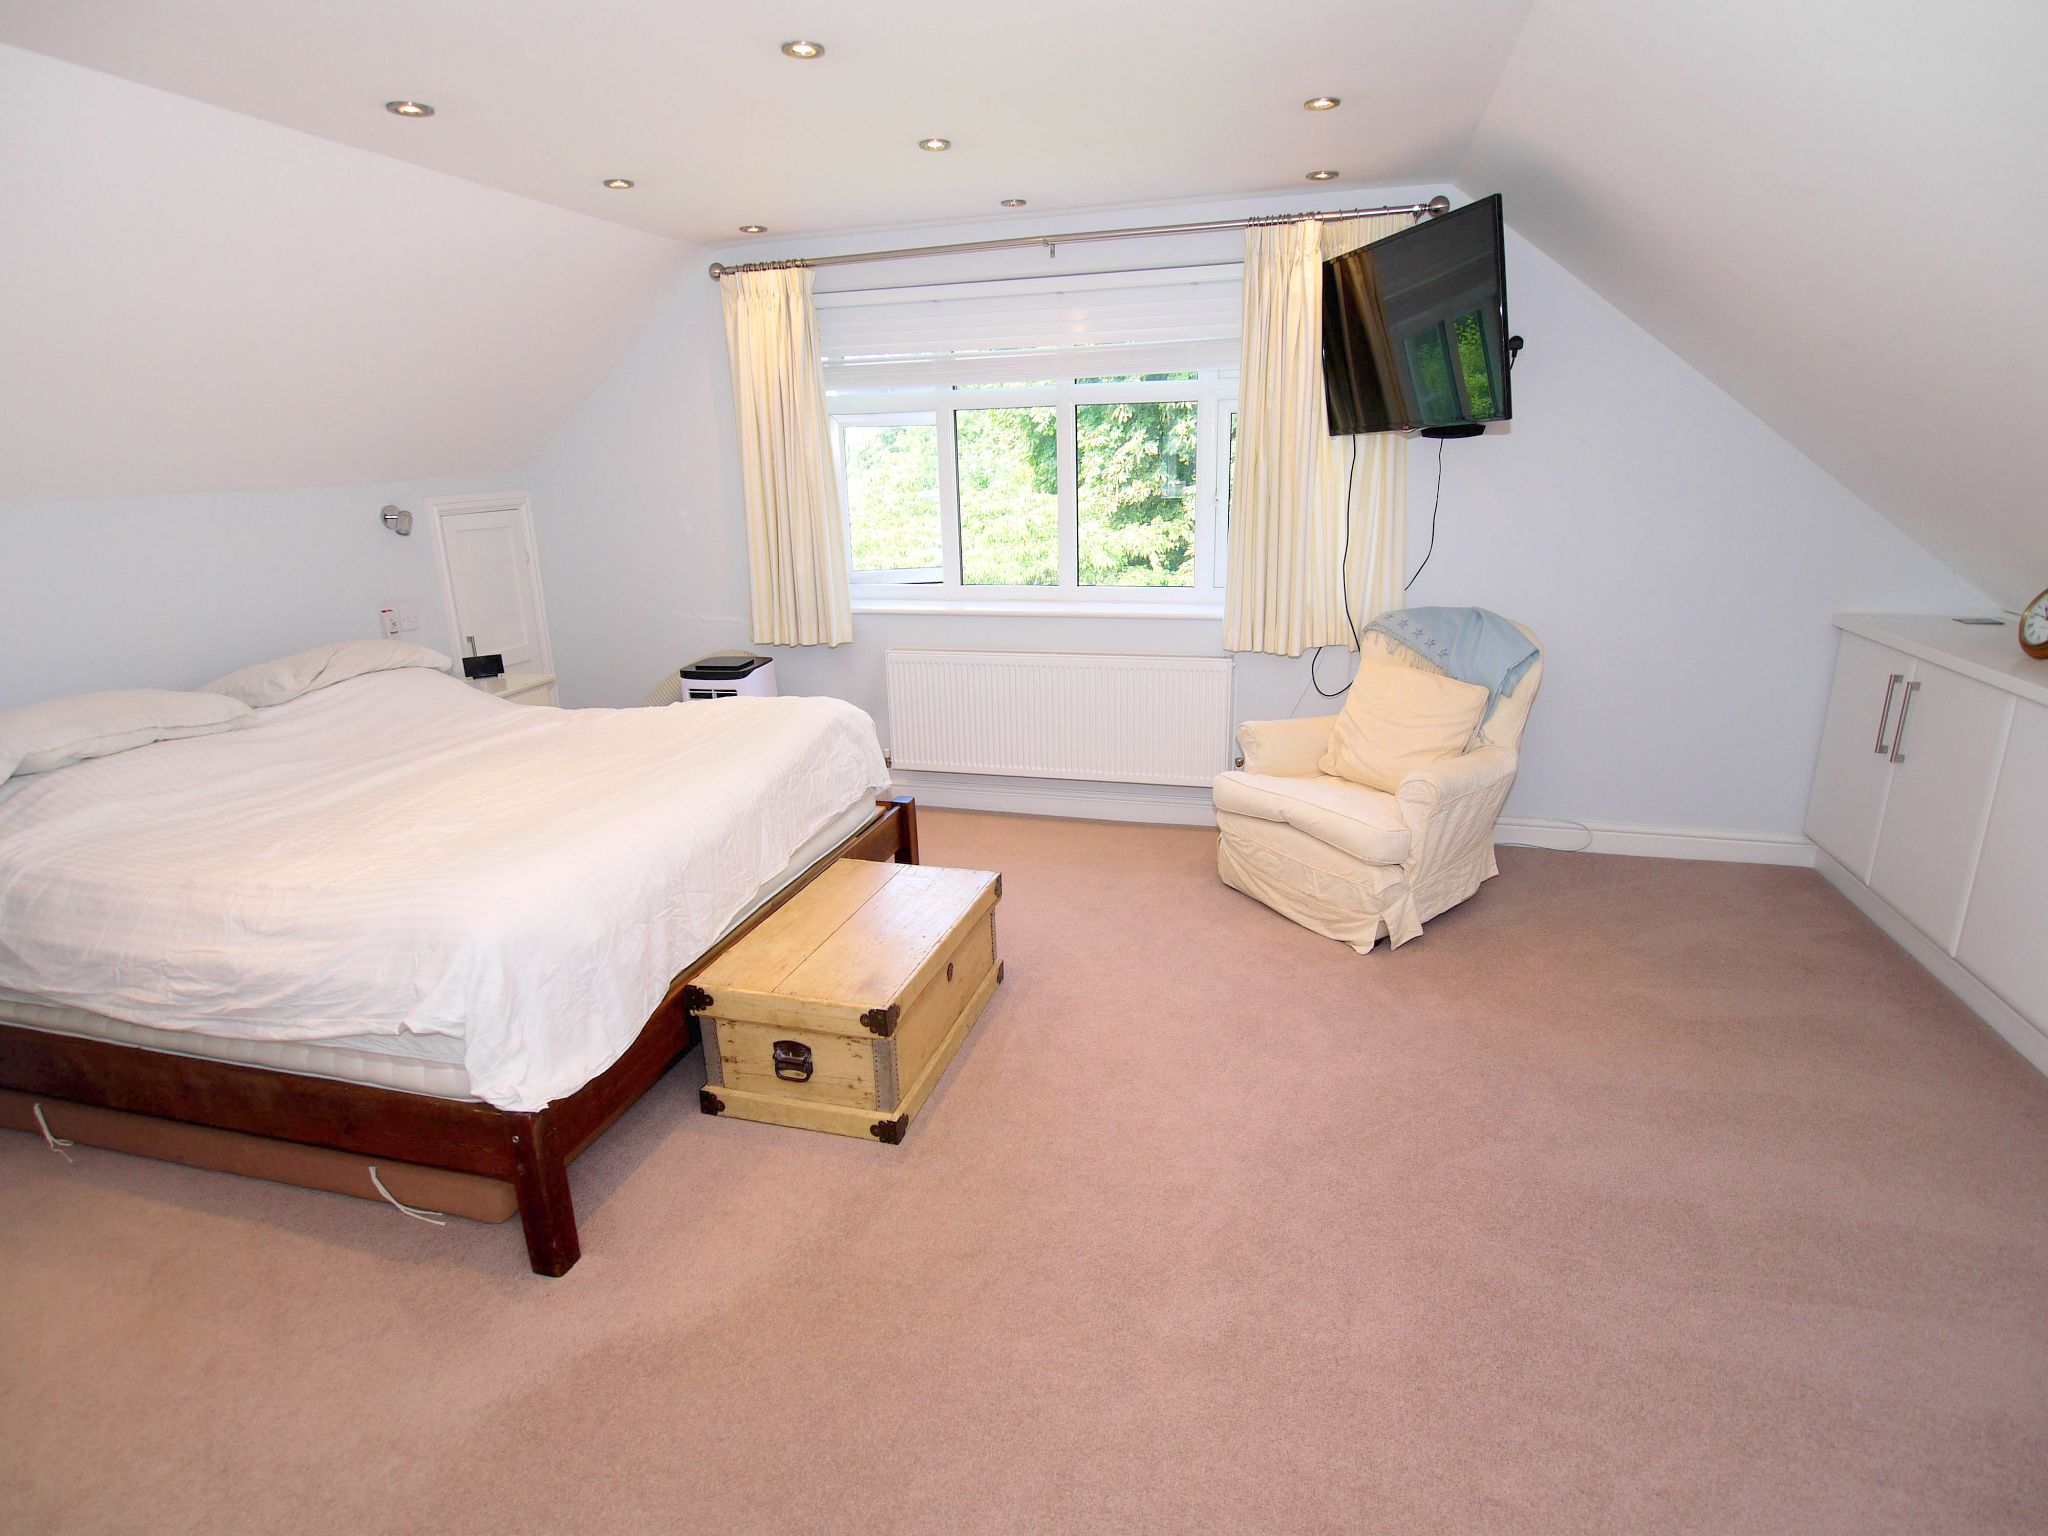 5 bedroom detached house Sold in Sevenoaks - Photograph 6